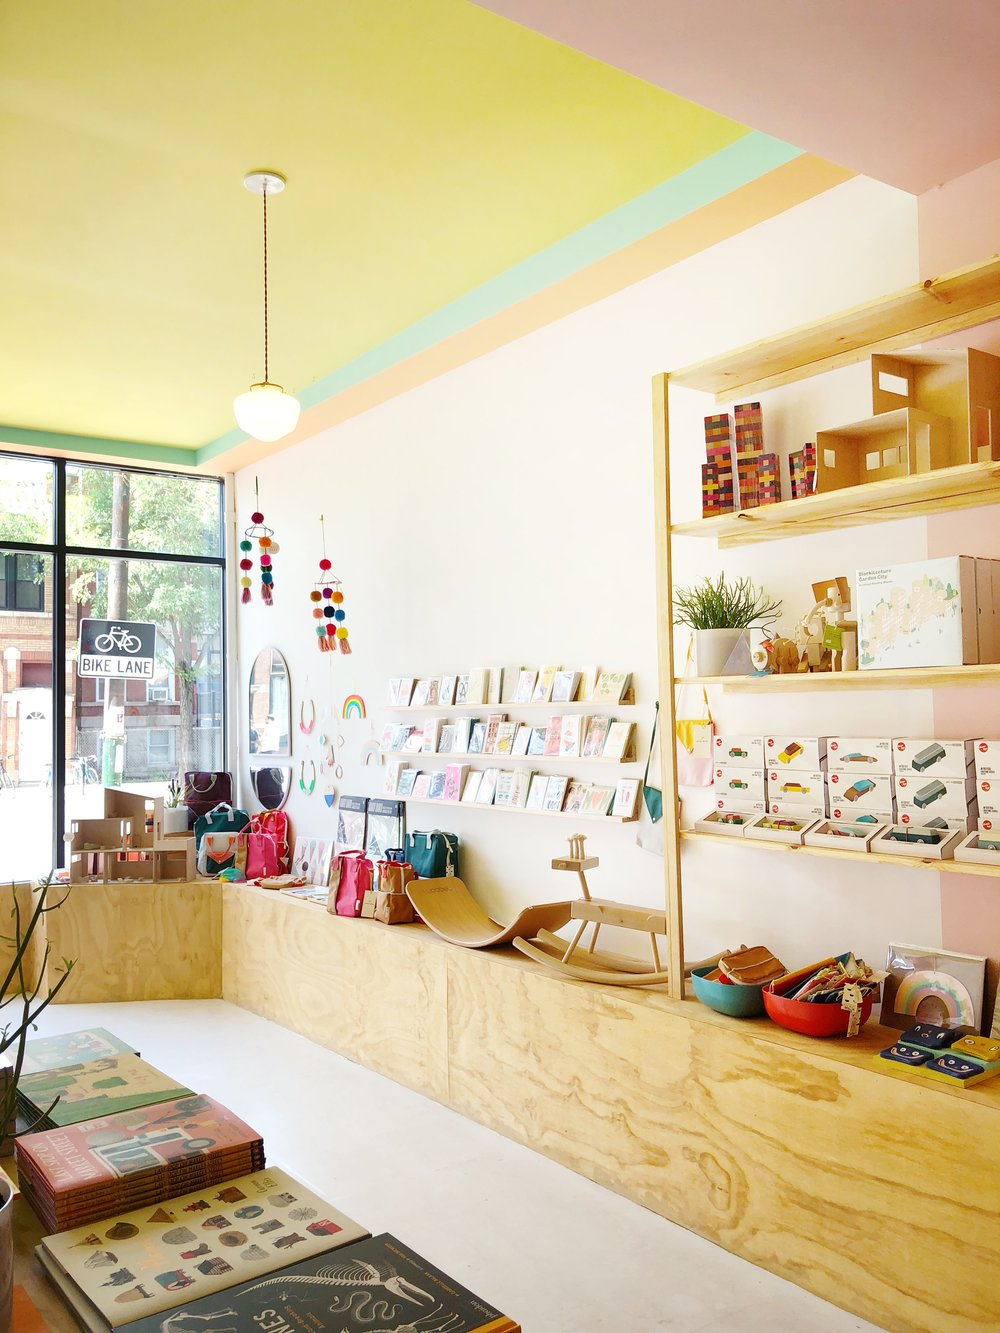 Something about traveling really opens up your mind. I love this sweet toy store, Peach Fuzz, we visited in Chicago's Humbolt Park. Those colors are so delicious!